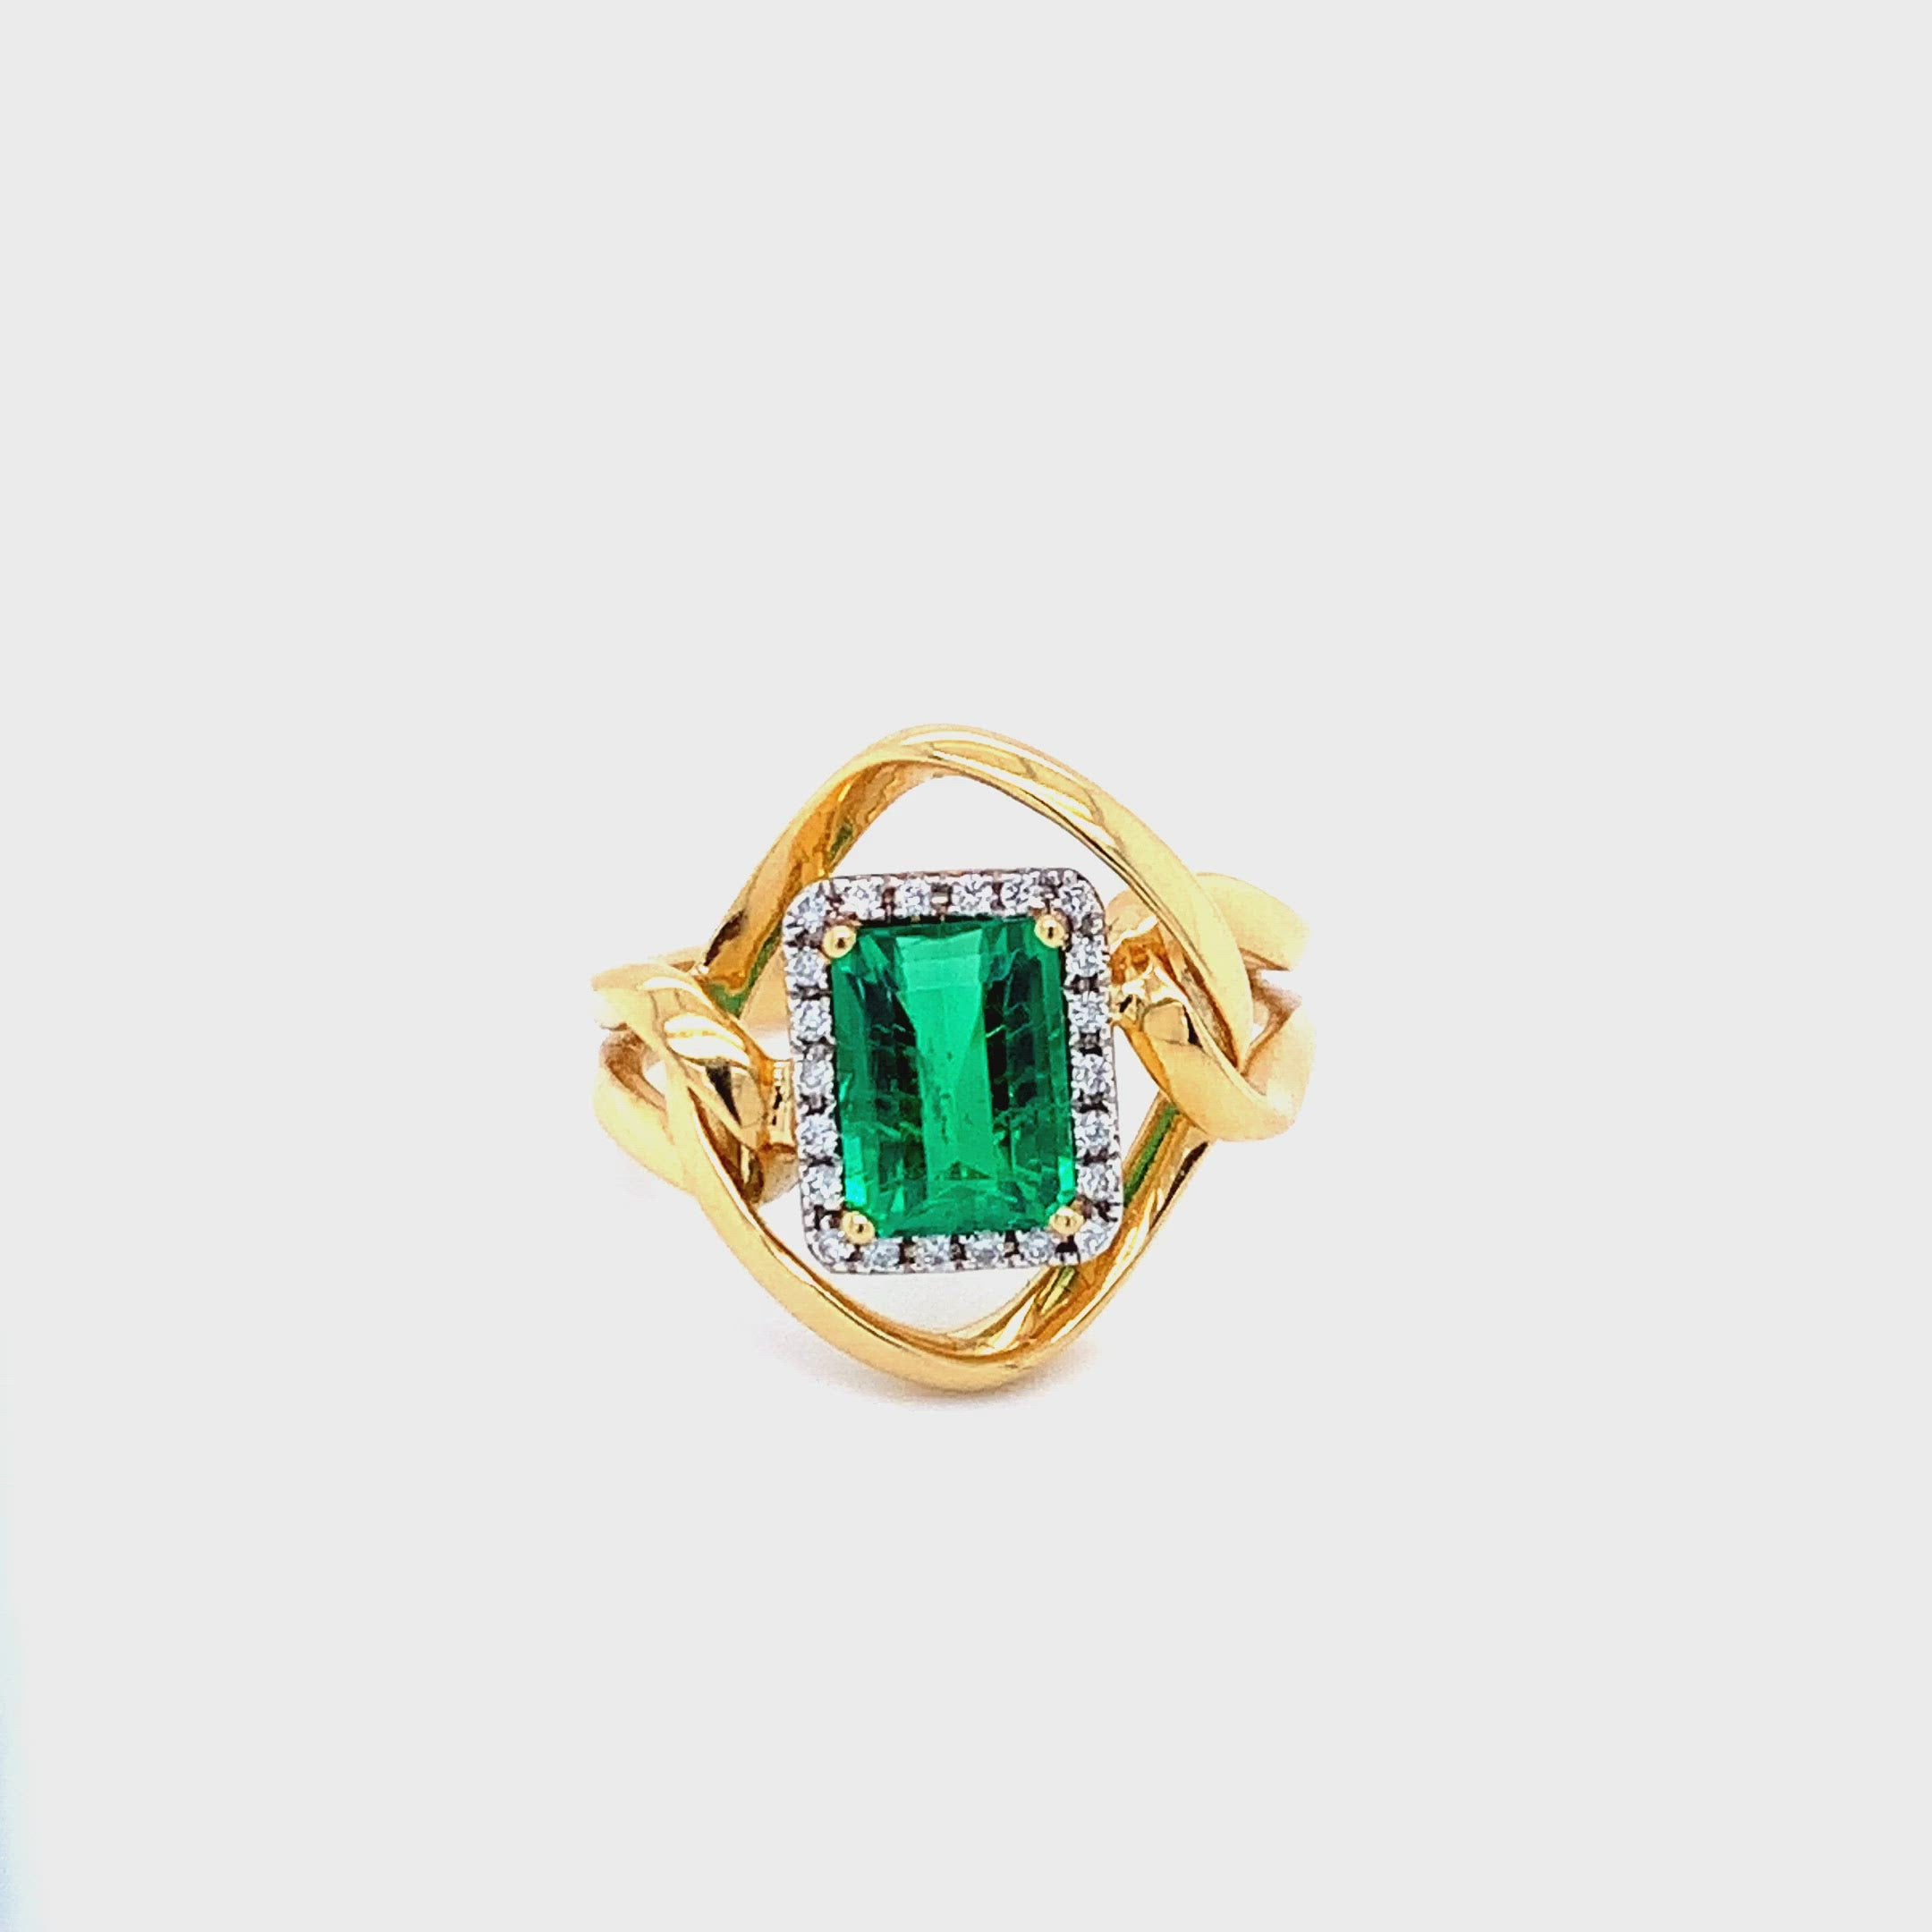 18K YELLOW GOLD WITH A 1.47CT EMERALD AND DIAMONDS IN AUSTIN, TX.